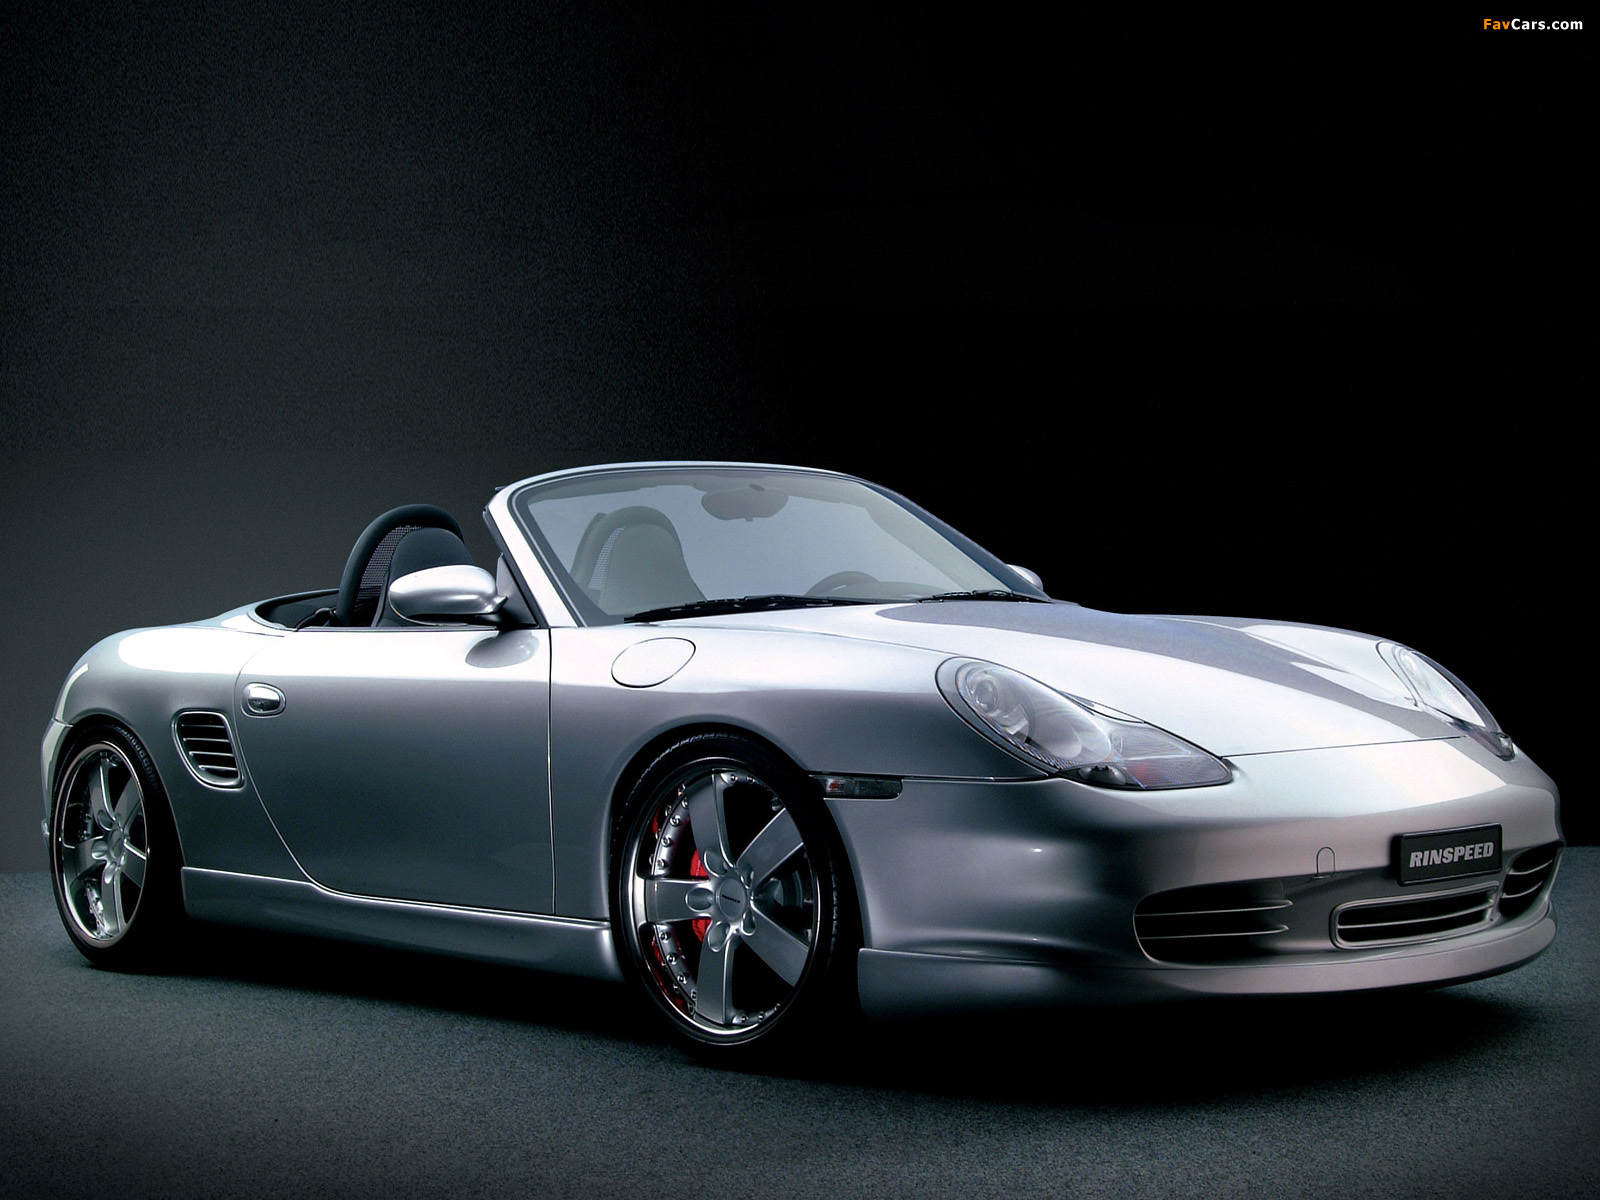 rinspeed porsche boxster (986) wallpapers (1600x1200)